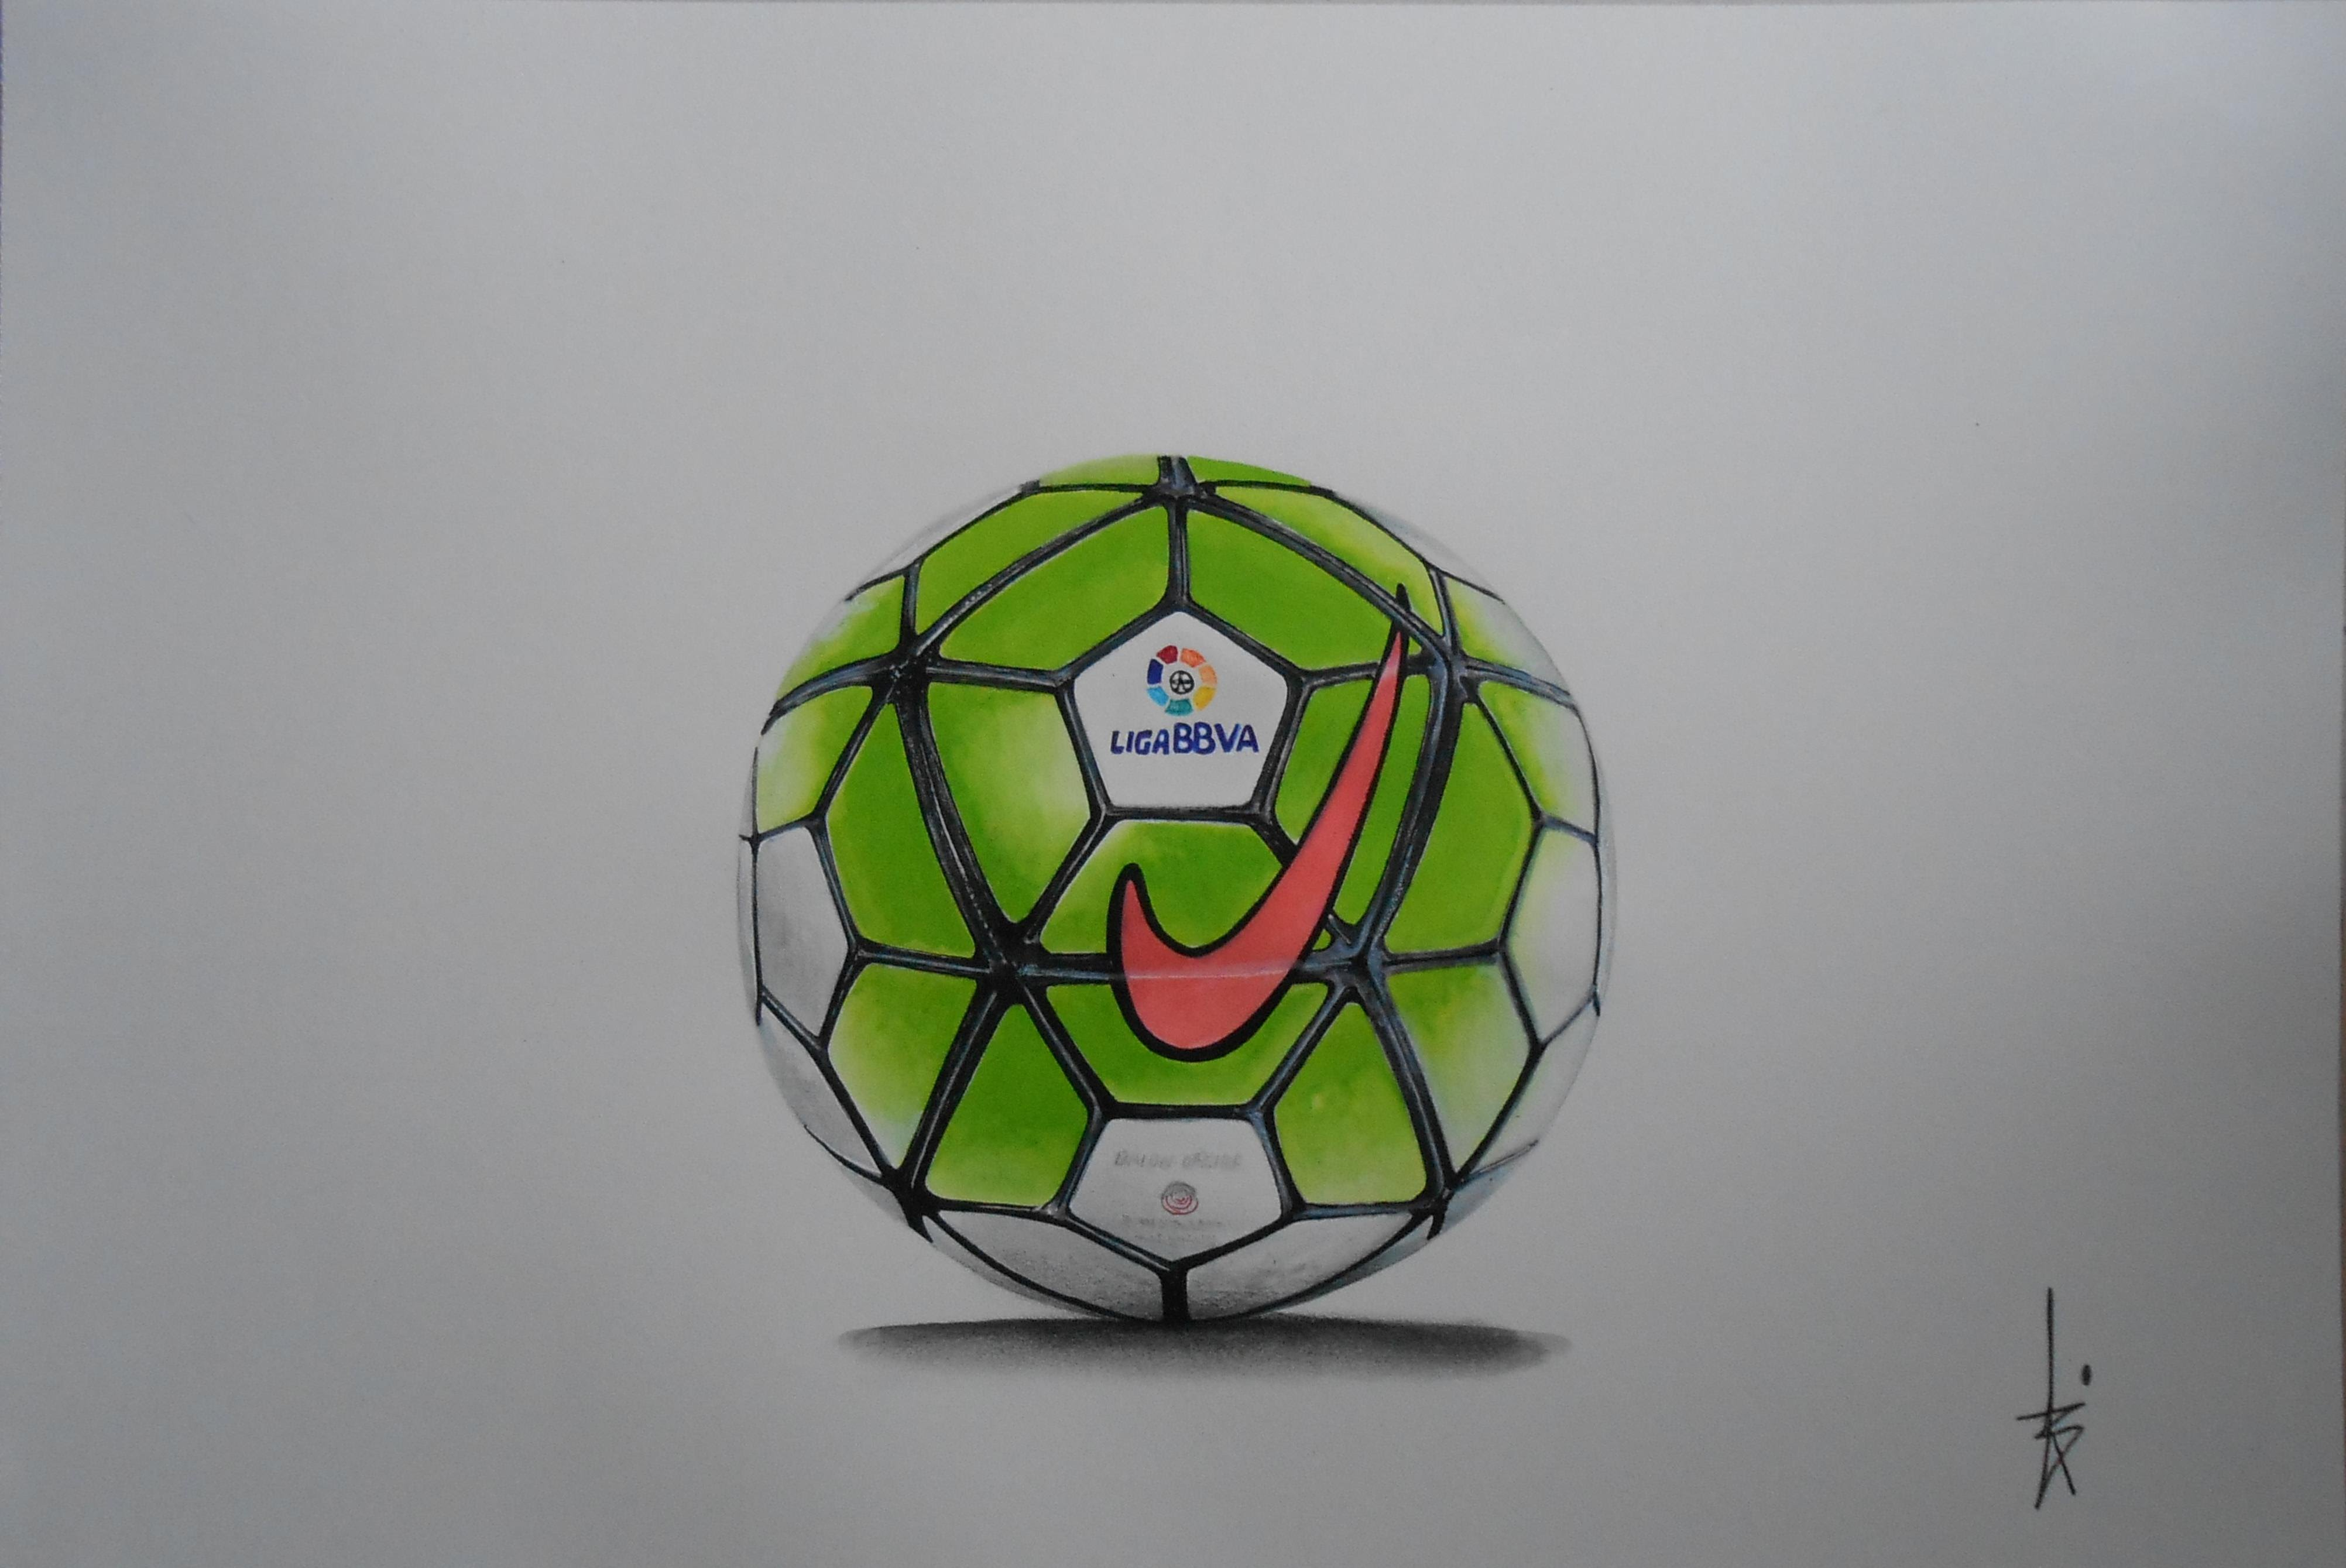 4008x2679 How To Draw Nike Football League Ball